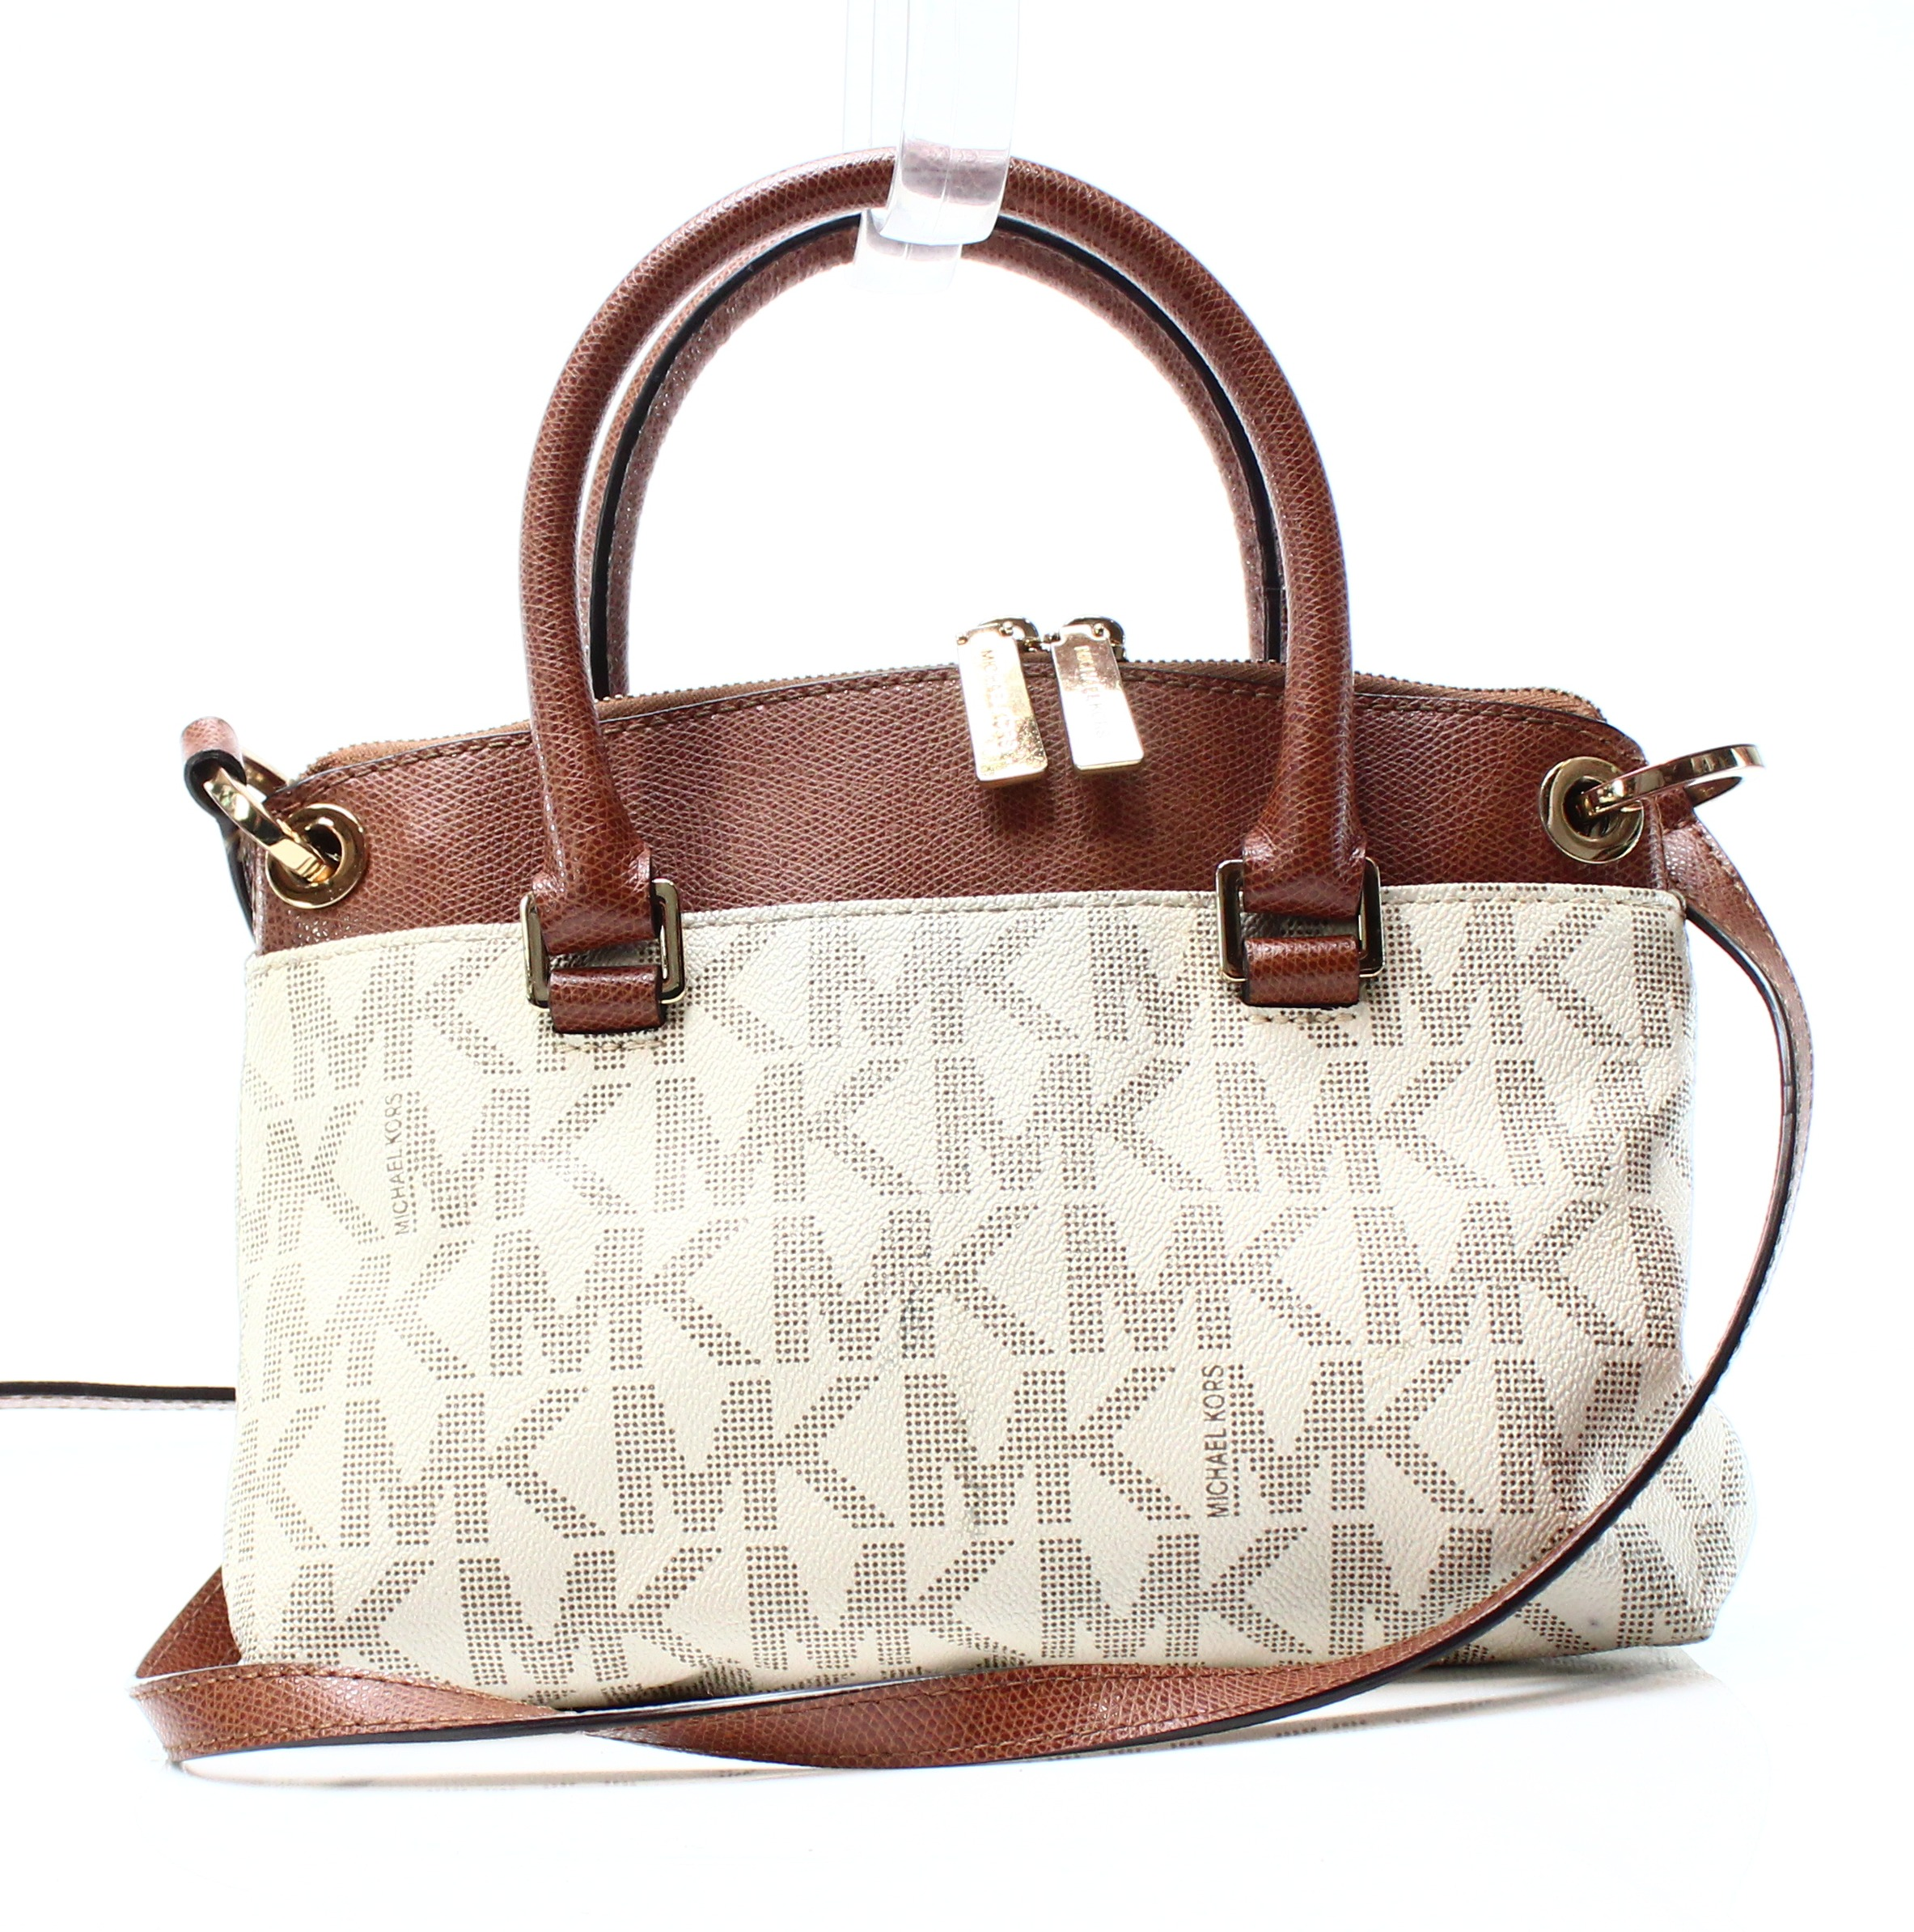 7a4f47bd1380a6 Michael Kors White Backpack Purse | Stanford Center for Opportunity ...